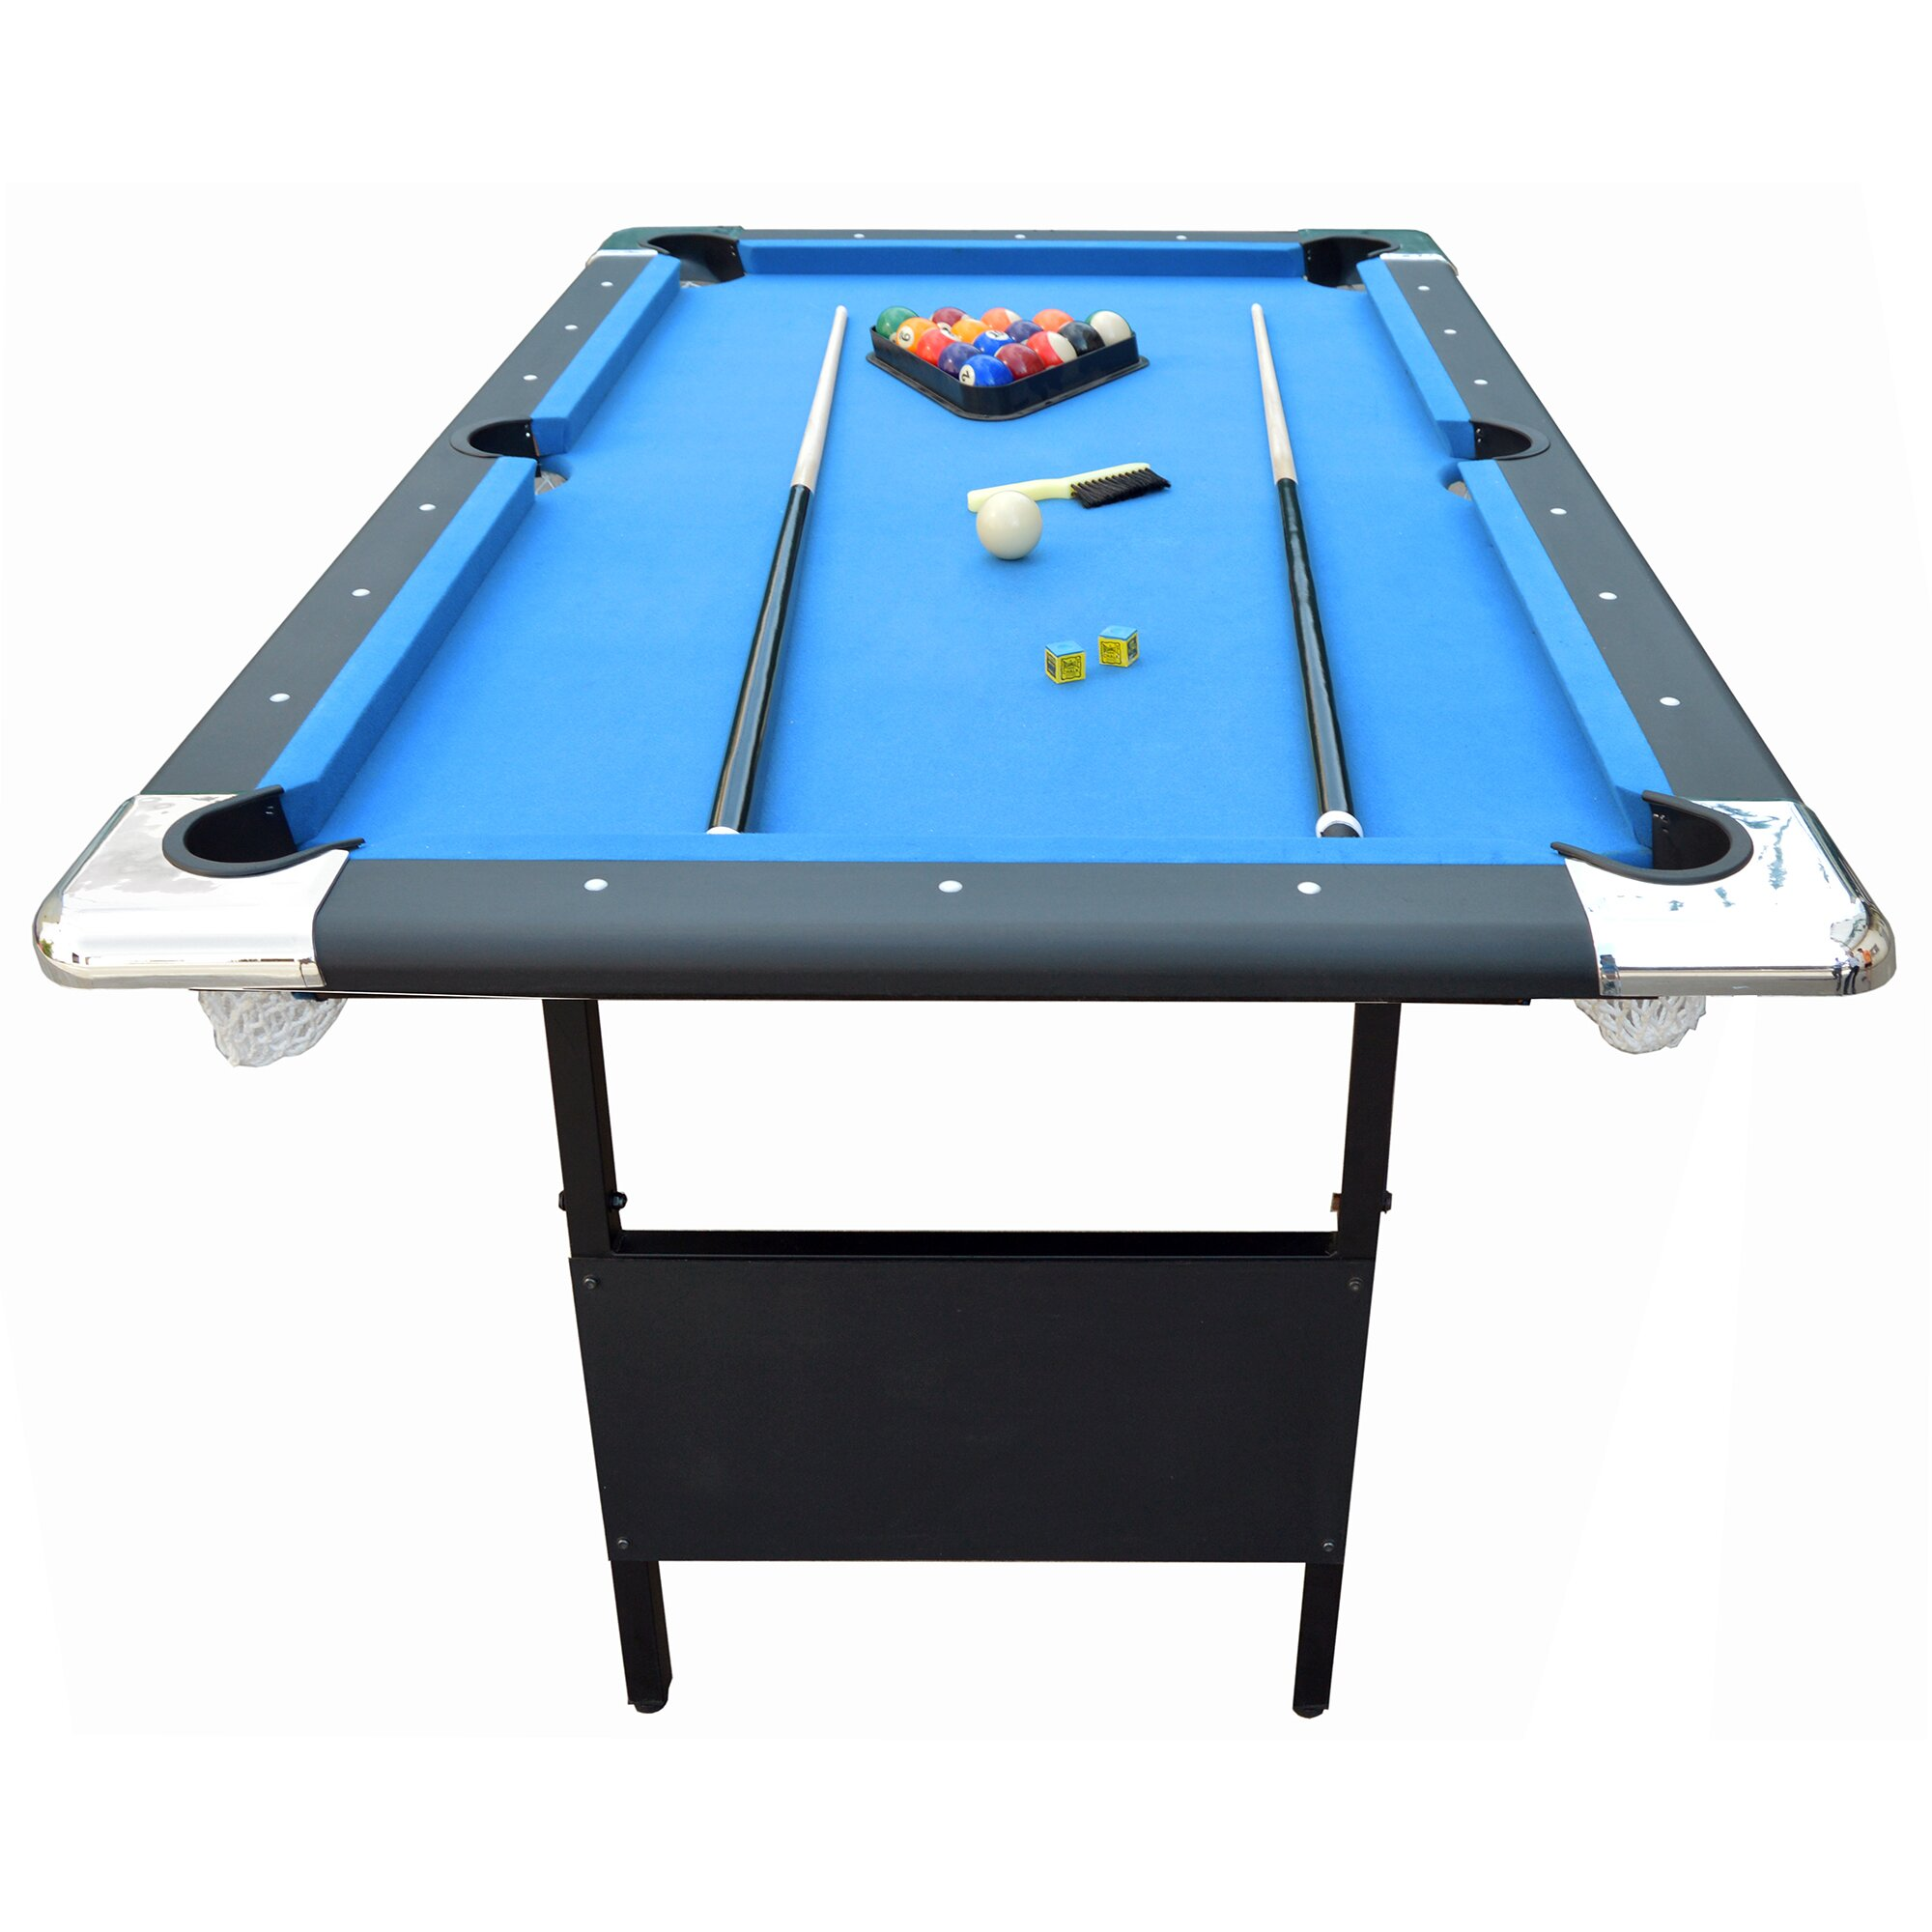 Hathaway games fairmont 6 39 portable pool table reviews for Table exterieur 3m